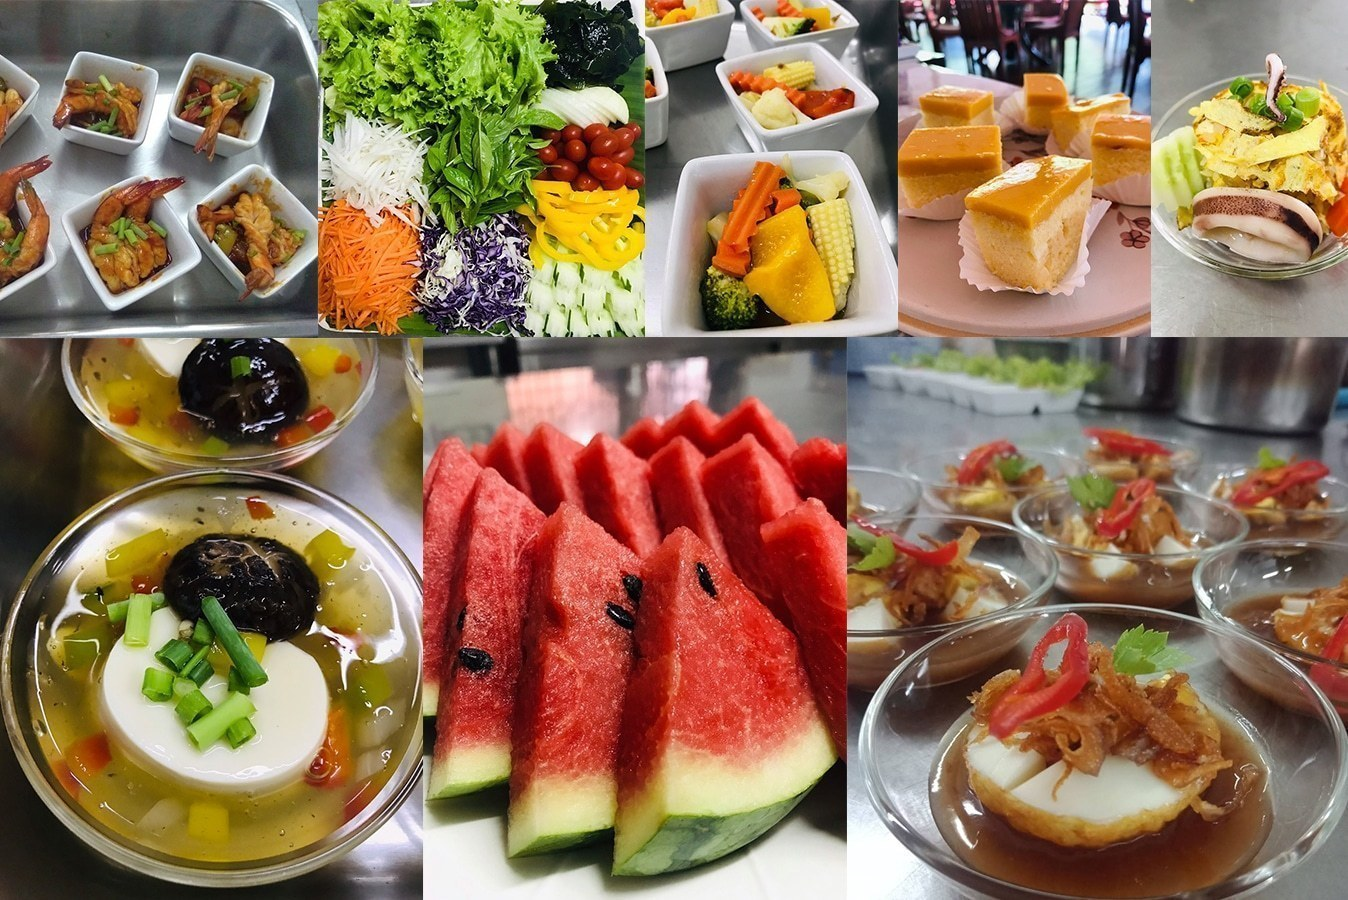 Tao Garden Health Resort and Spa – Breakfast, Lunch, Dinner